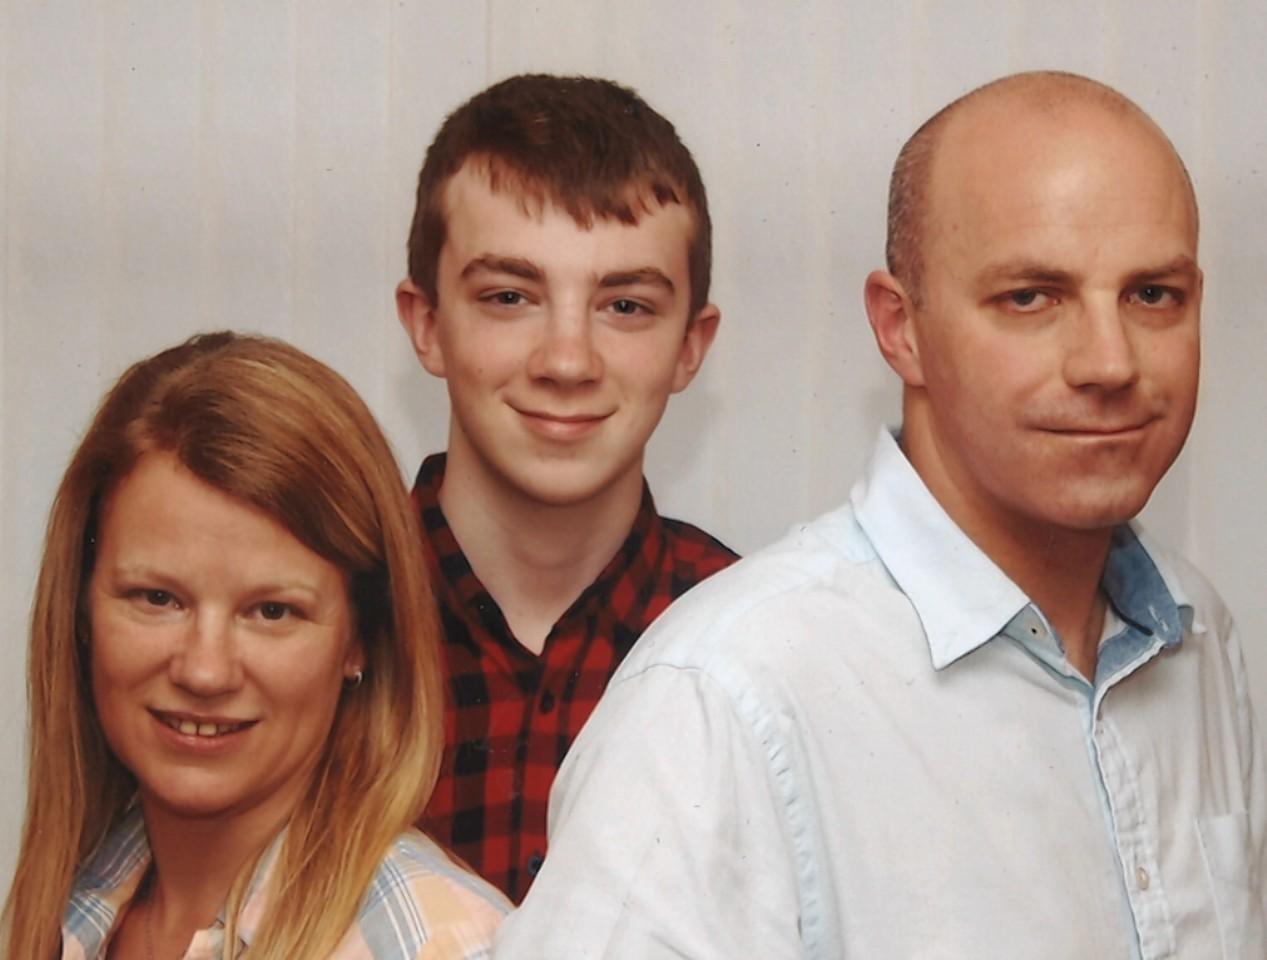 Michael McLean with his family